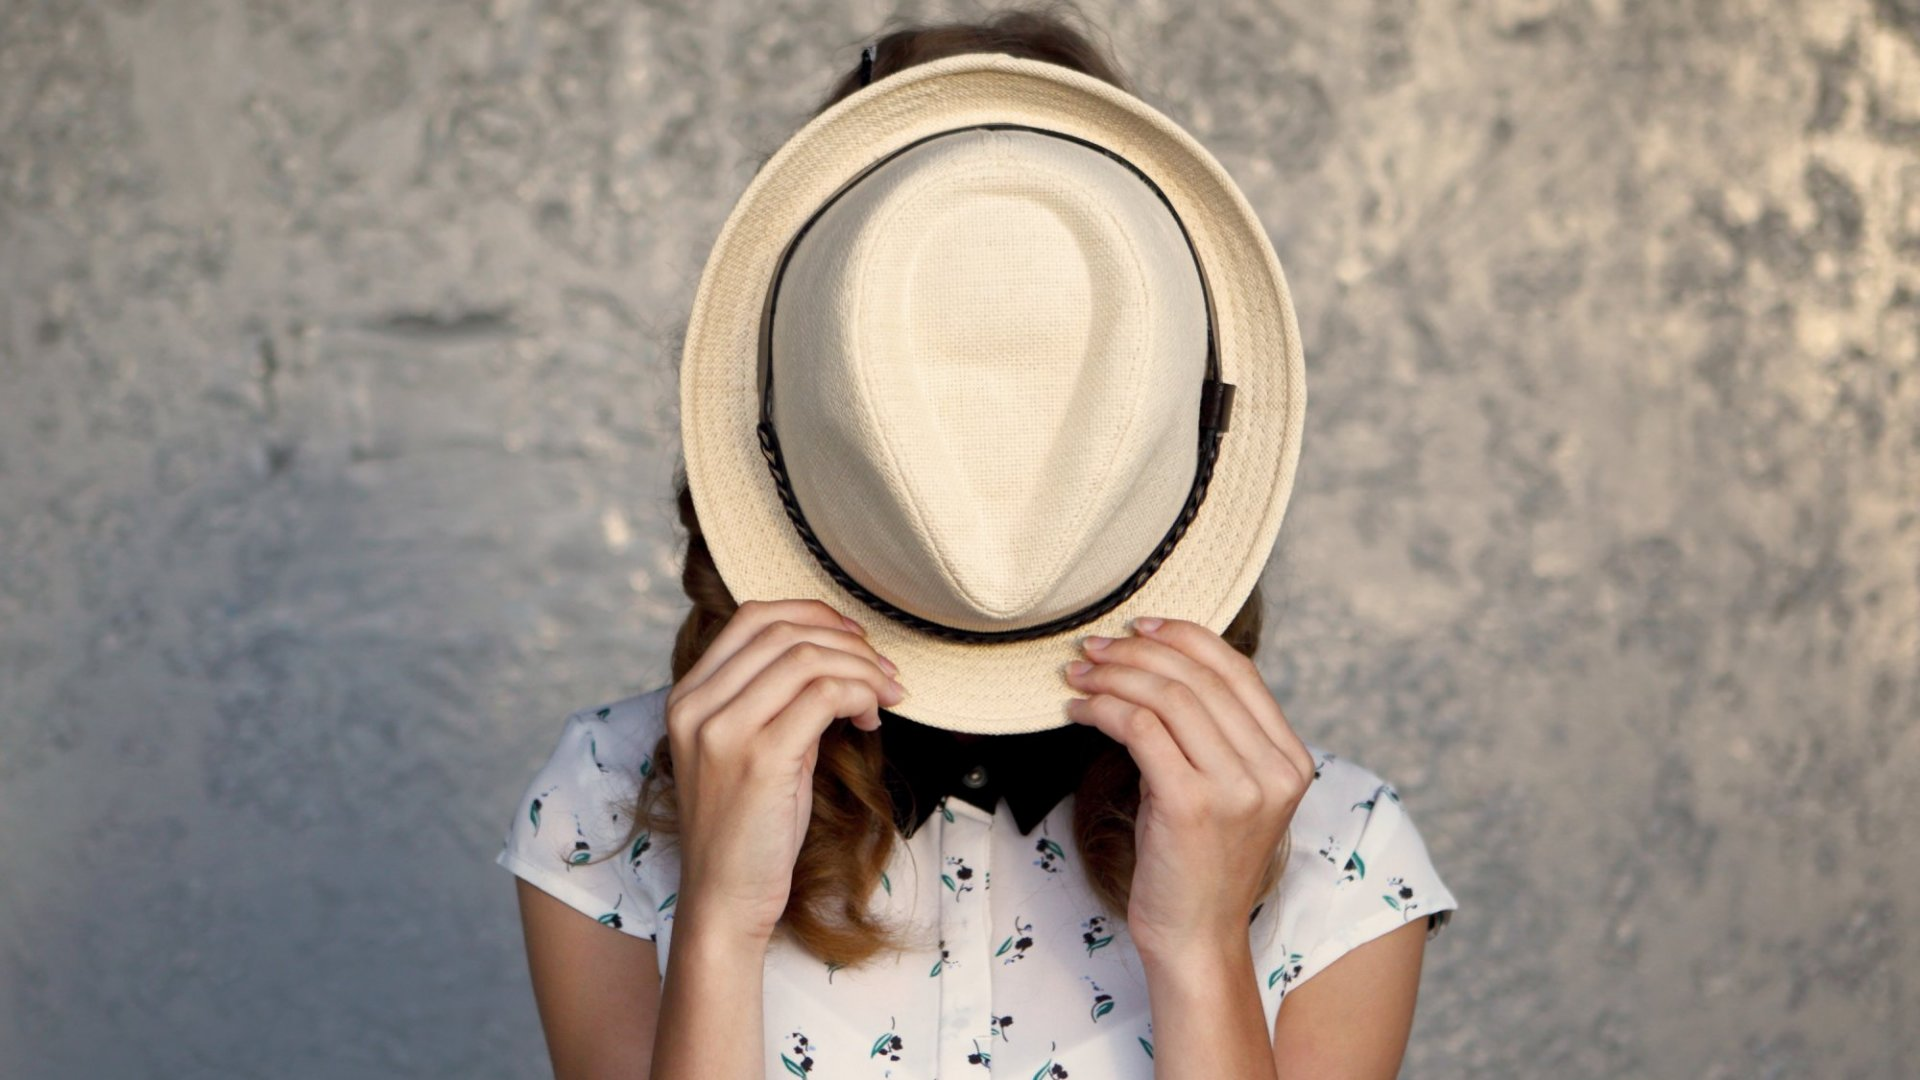 Everything You Know About Introverts Is Probably Wrong. Here's Why